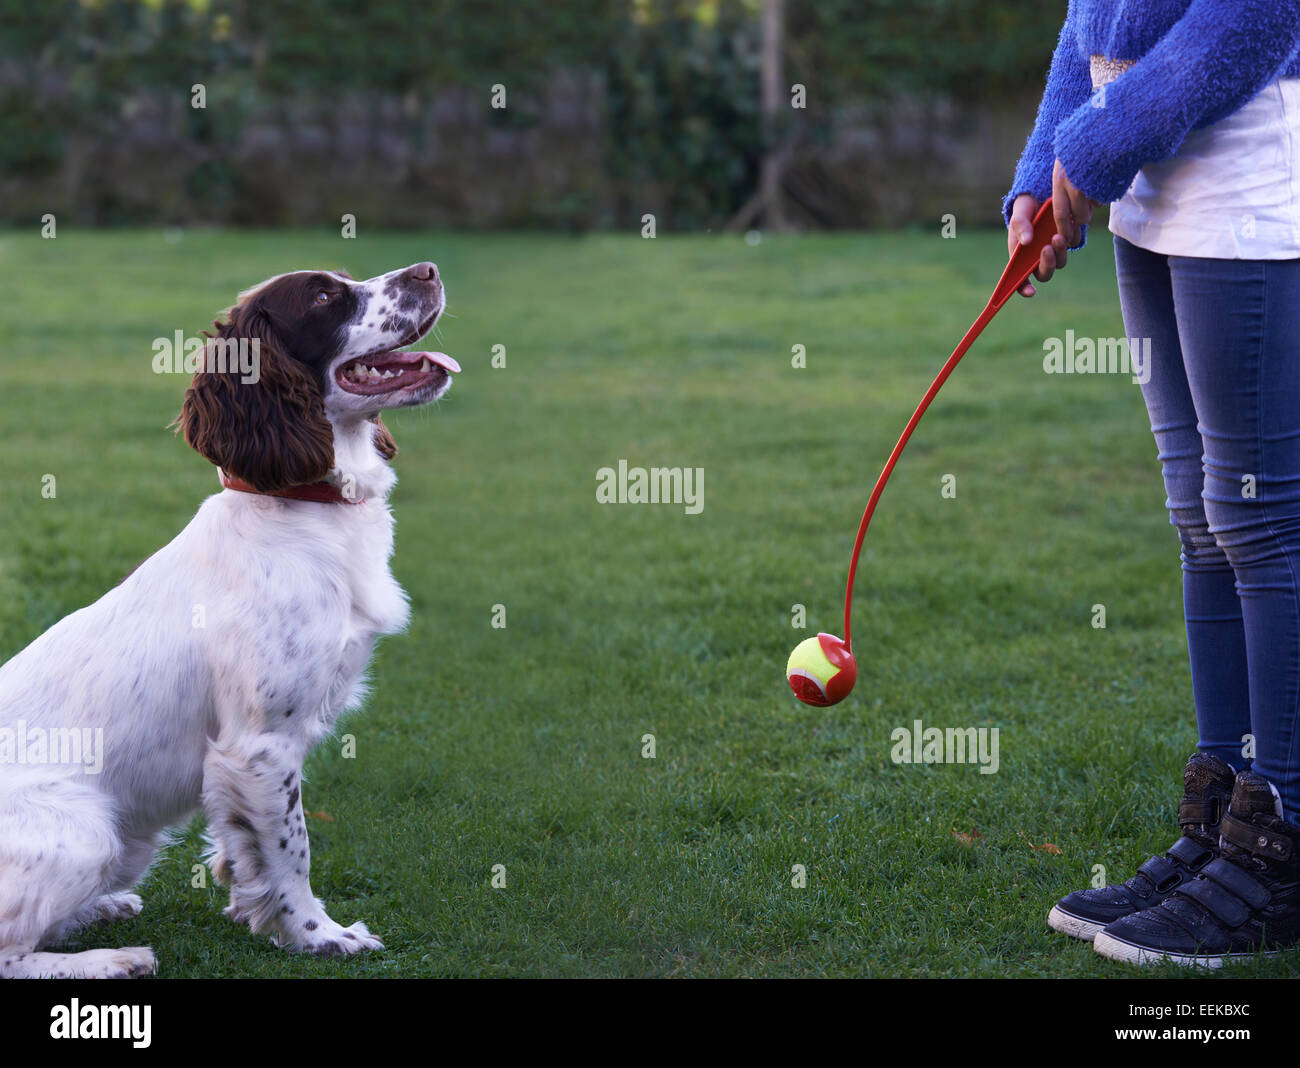 Girl Throwing Ball For Pet Spaniel Dog In Garden Stock Photo